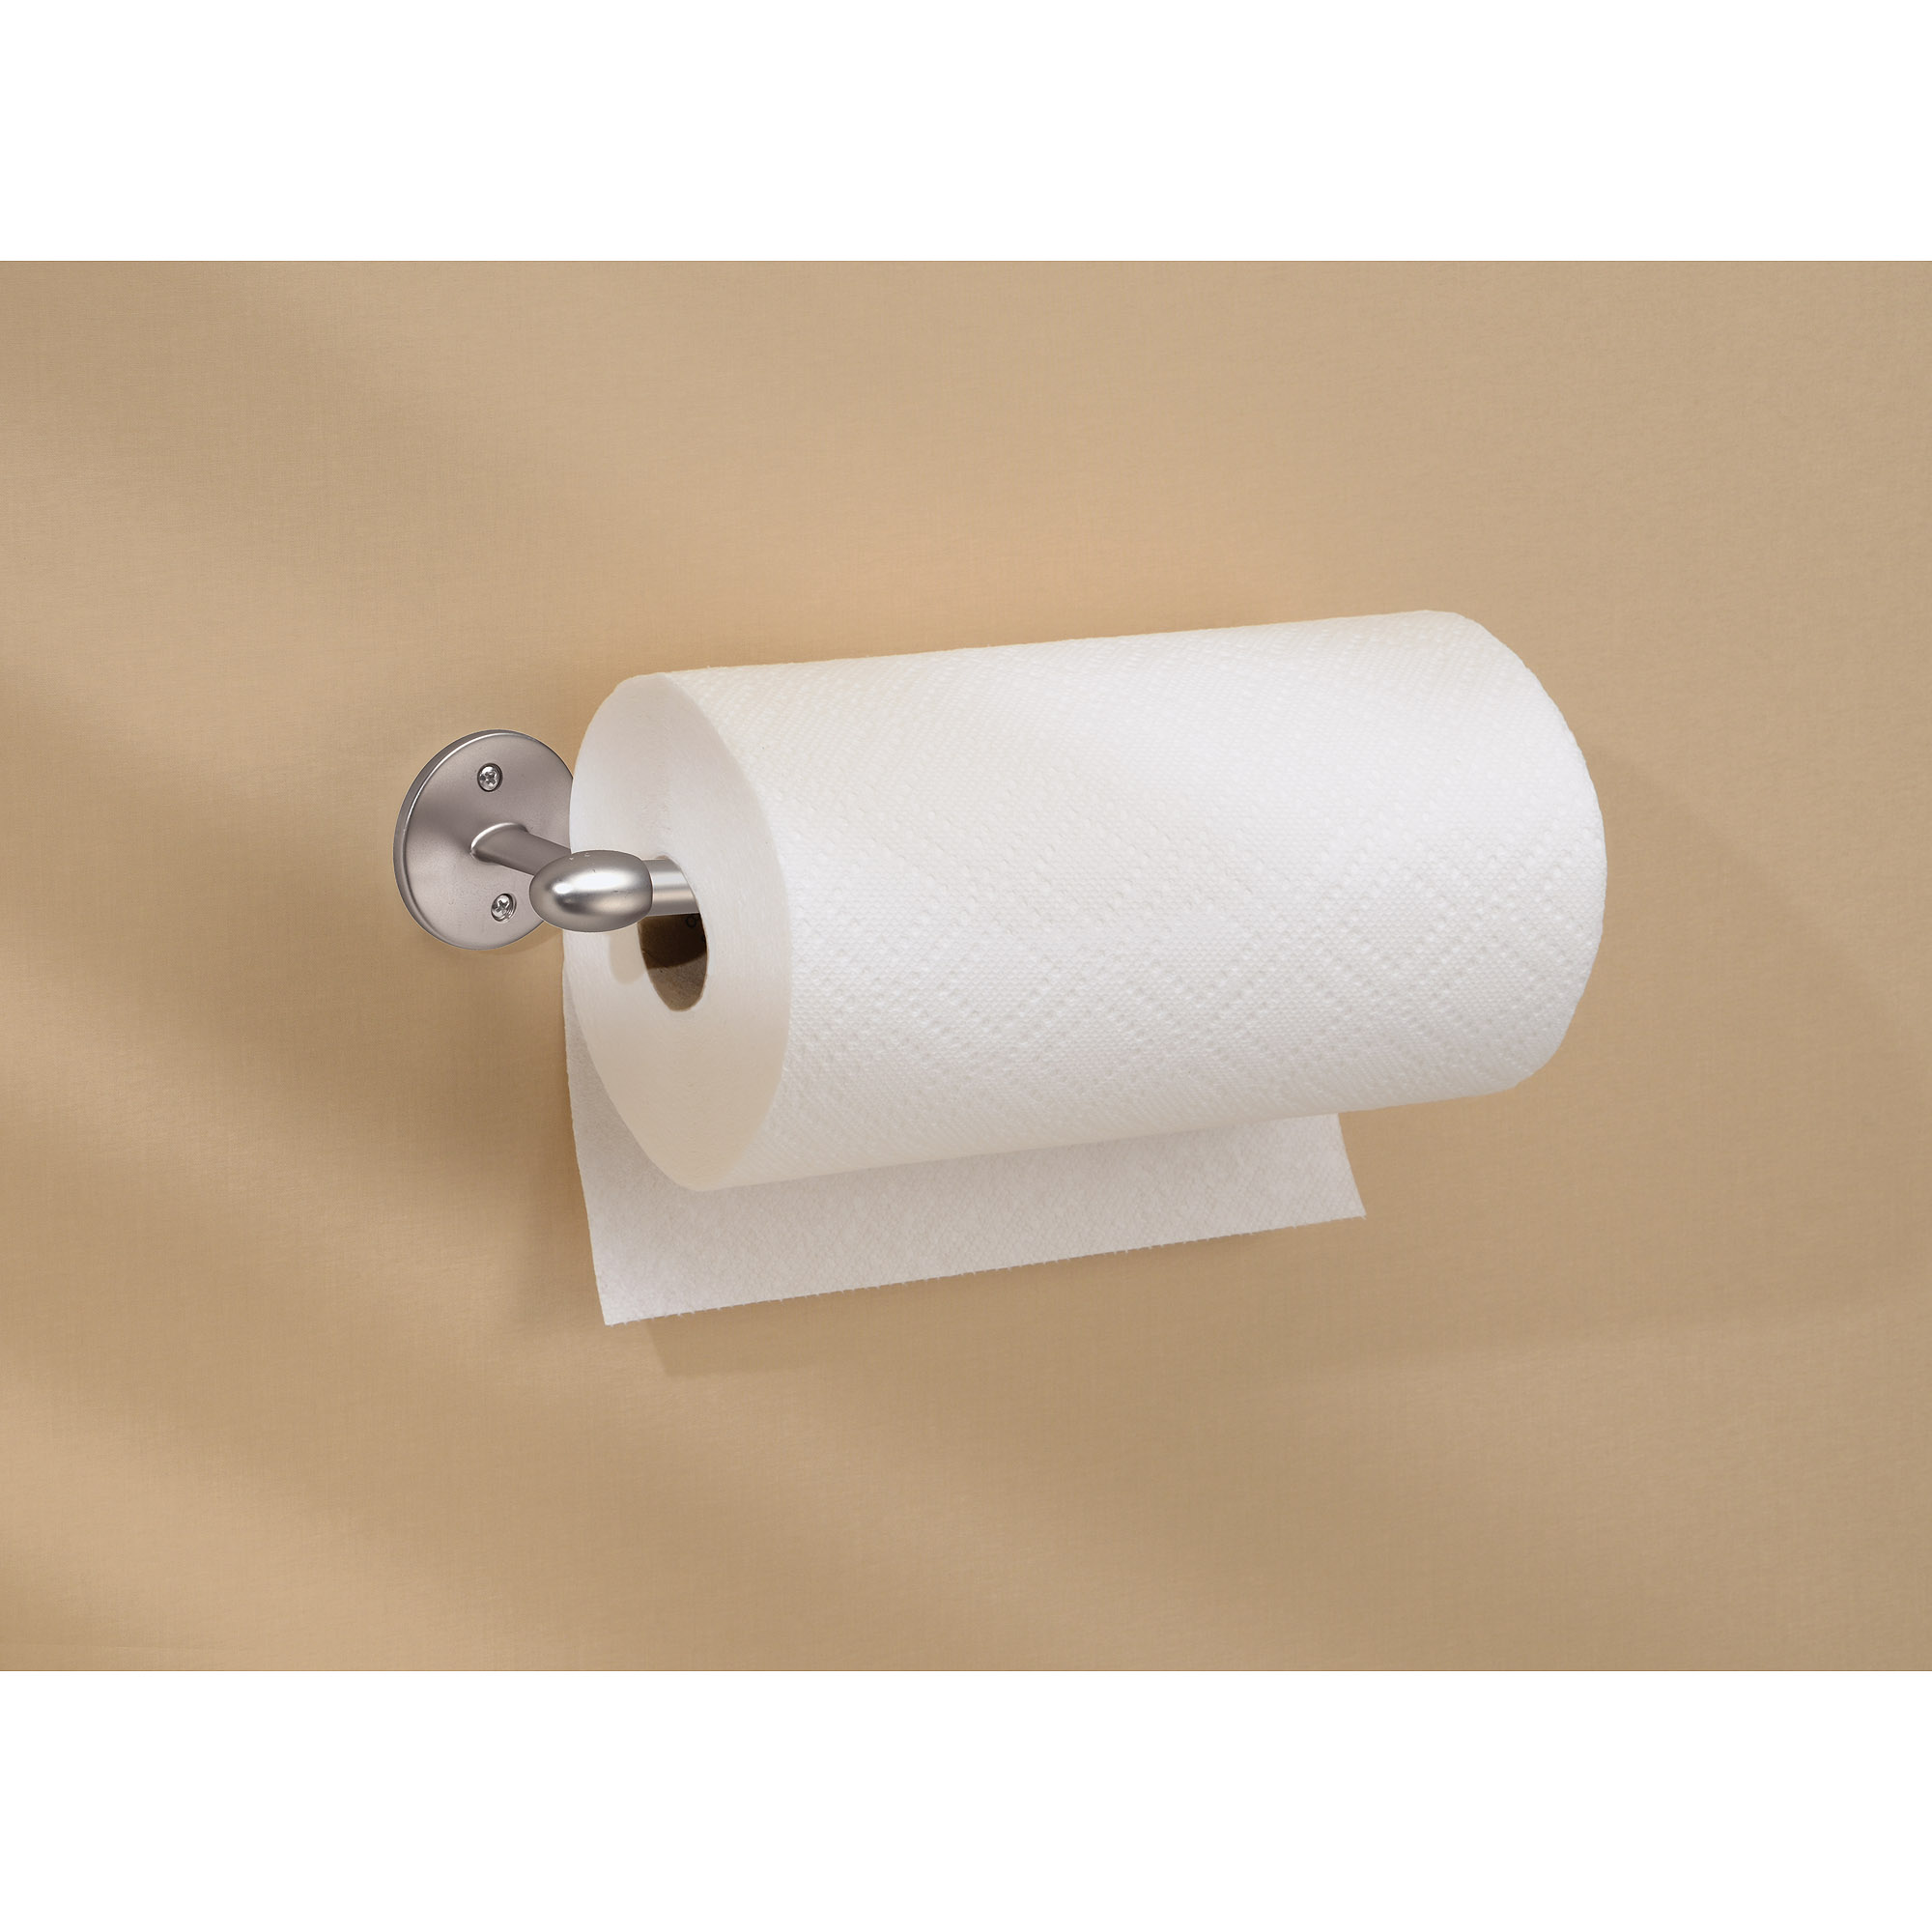 Orbinni Wall Mounted Paper Towel Holder - Walmart.com